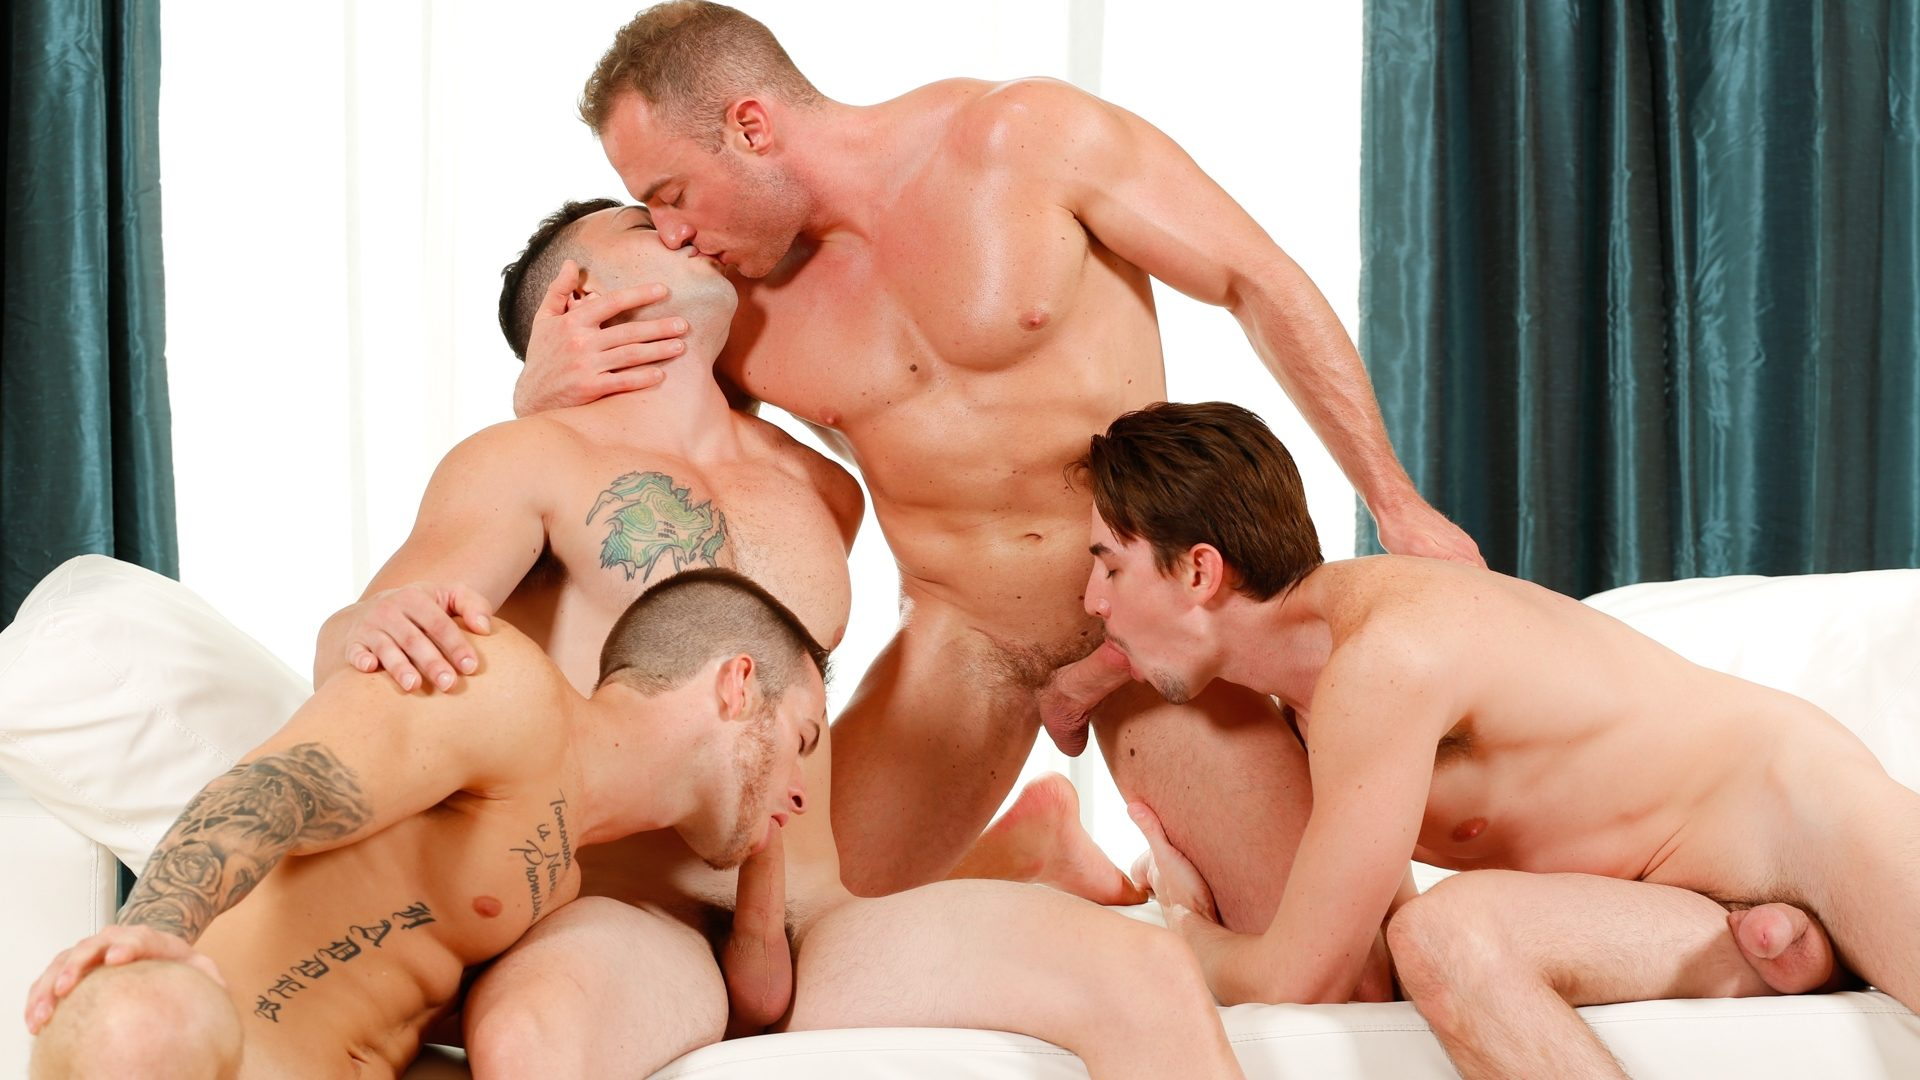 Quentin Gainz, Johnny Riley, Jack Hunter and Jacob Durham 1